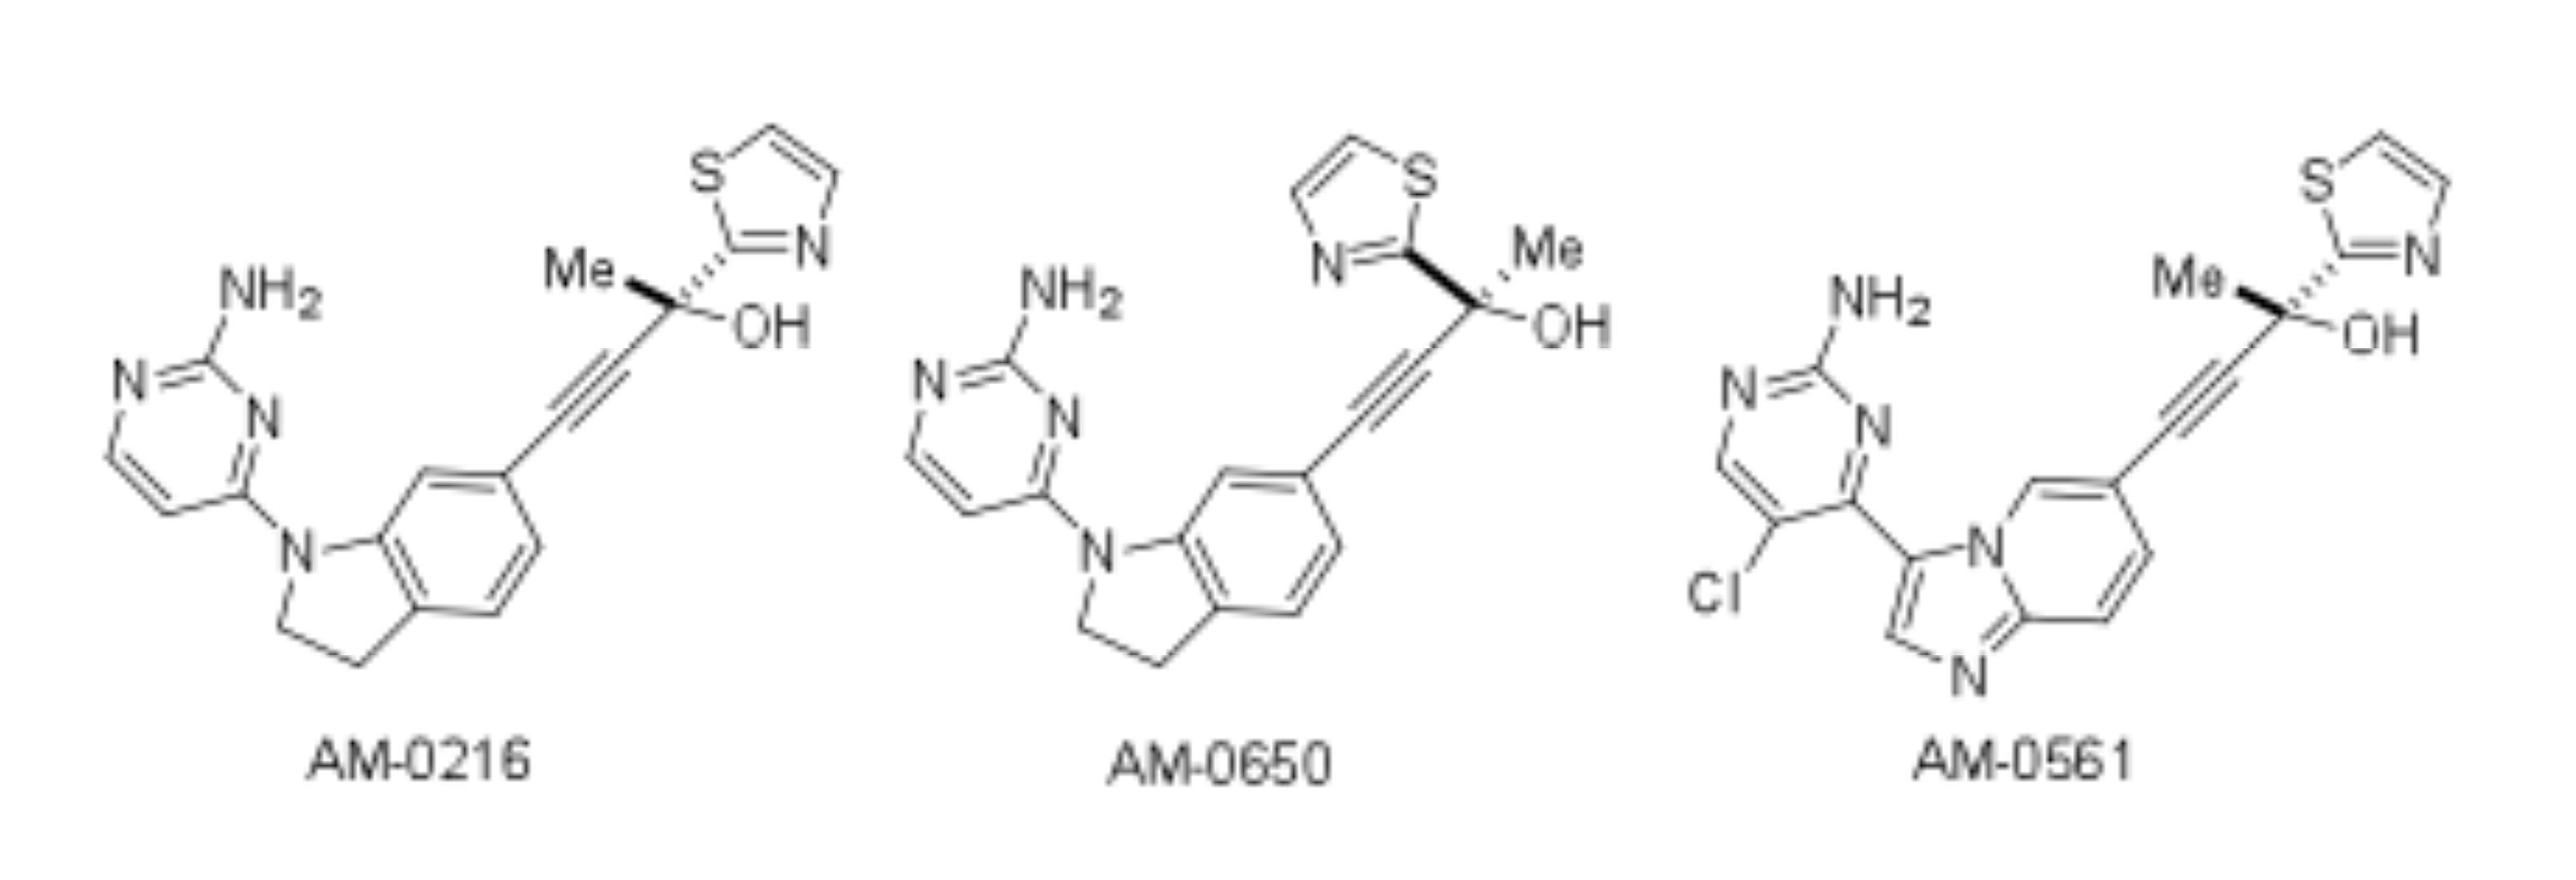 The structure of Amgen NIK compounds.